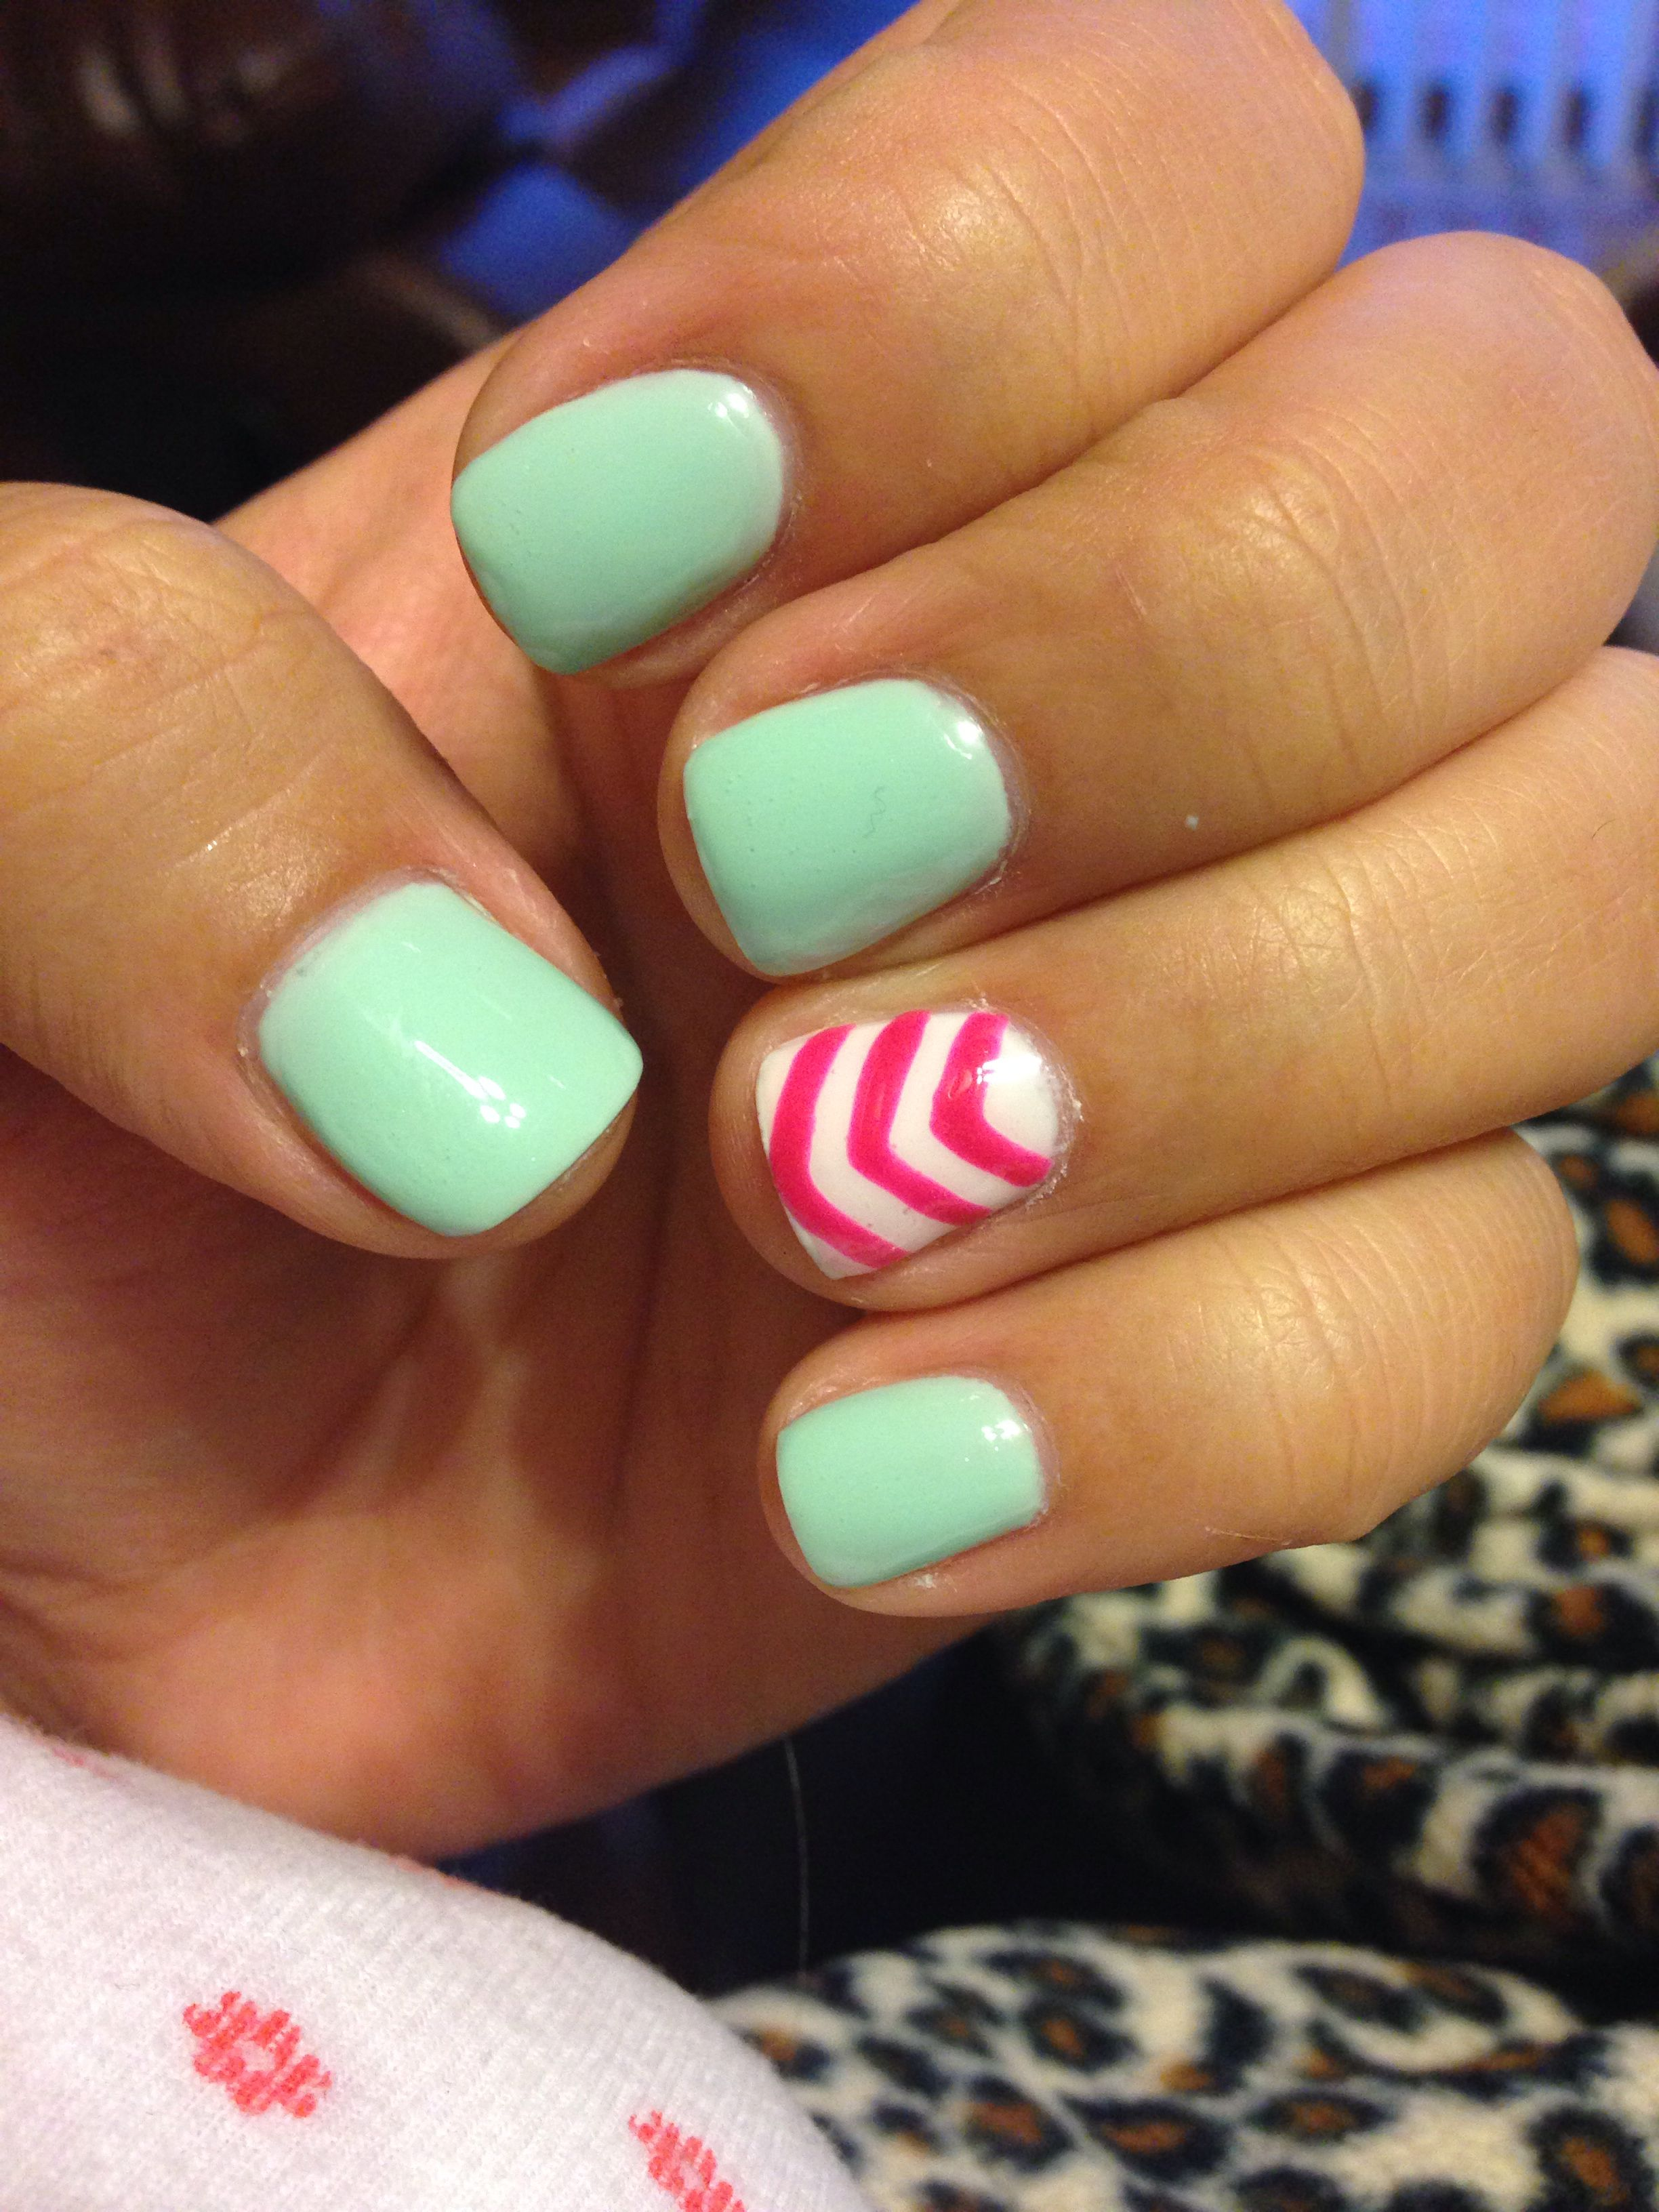 No Chip Manicure Short Nails | No chip manicure for short nails ...